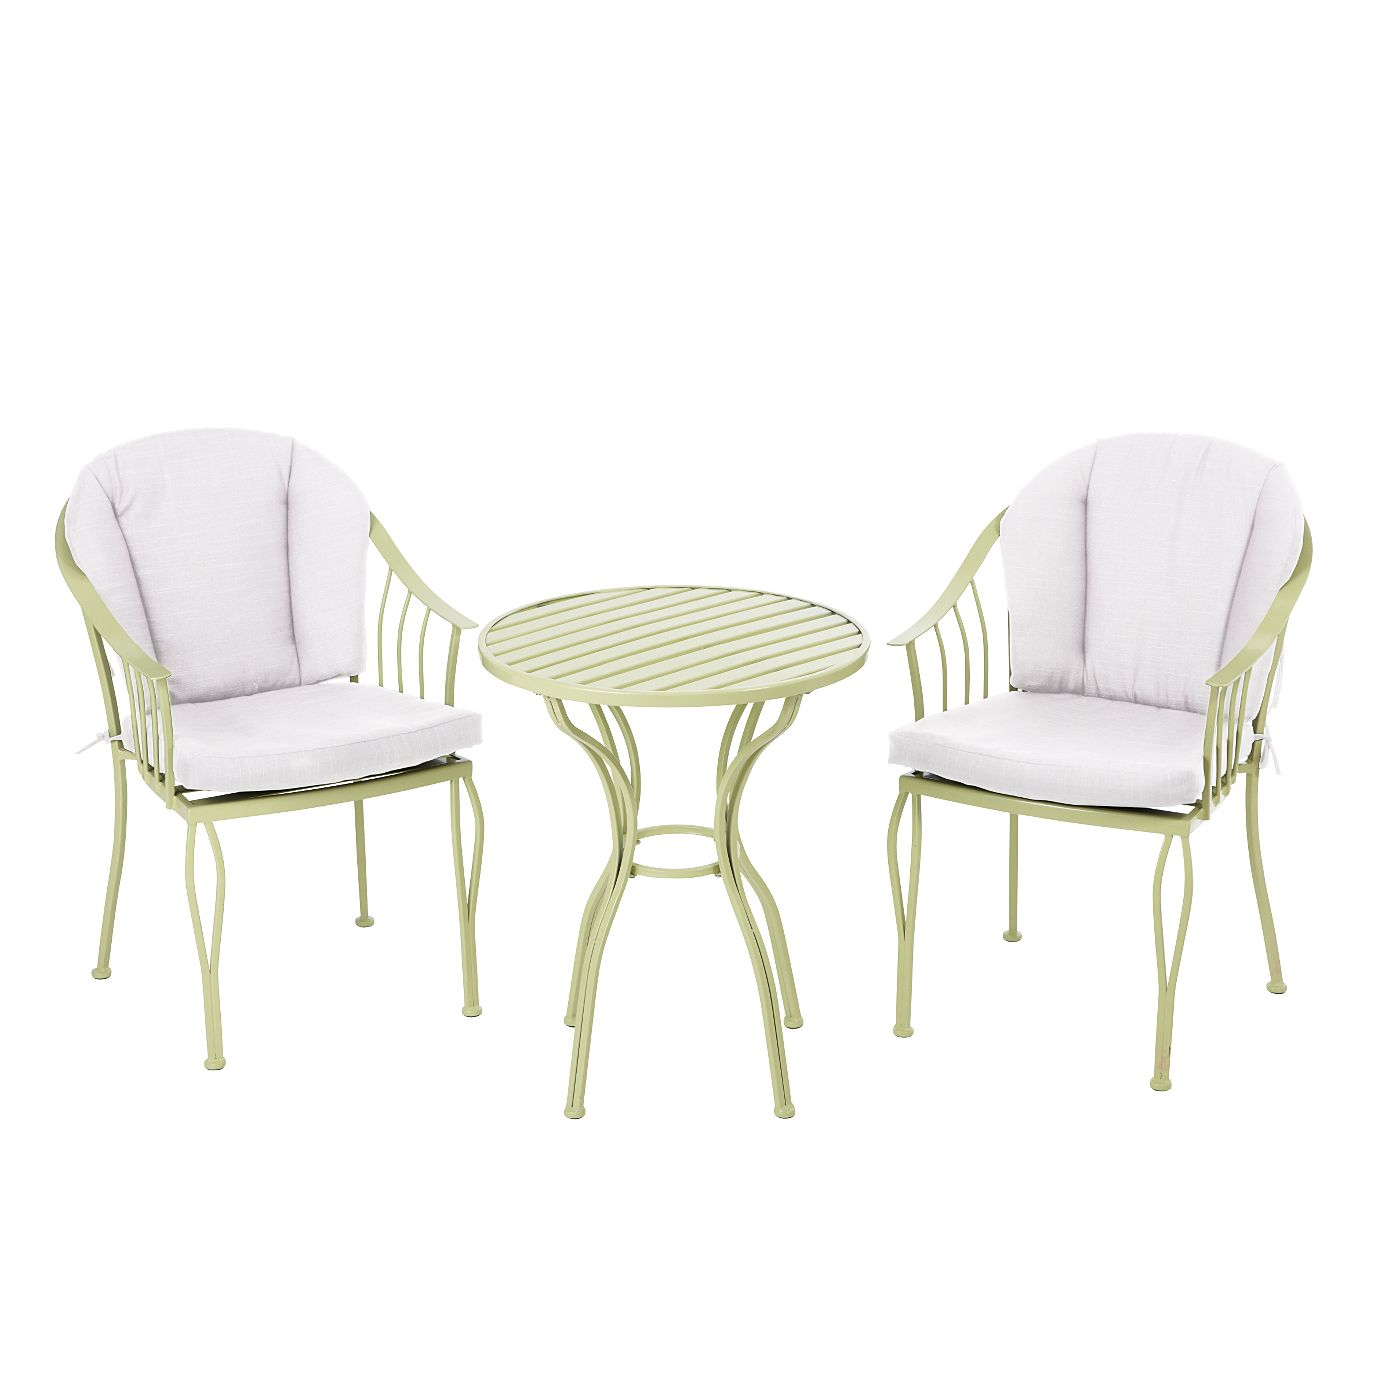 Habitat Outside Sofa Heritage 3 Piece Bistro Set Green View All Outdoor Asda